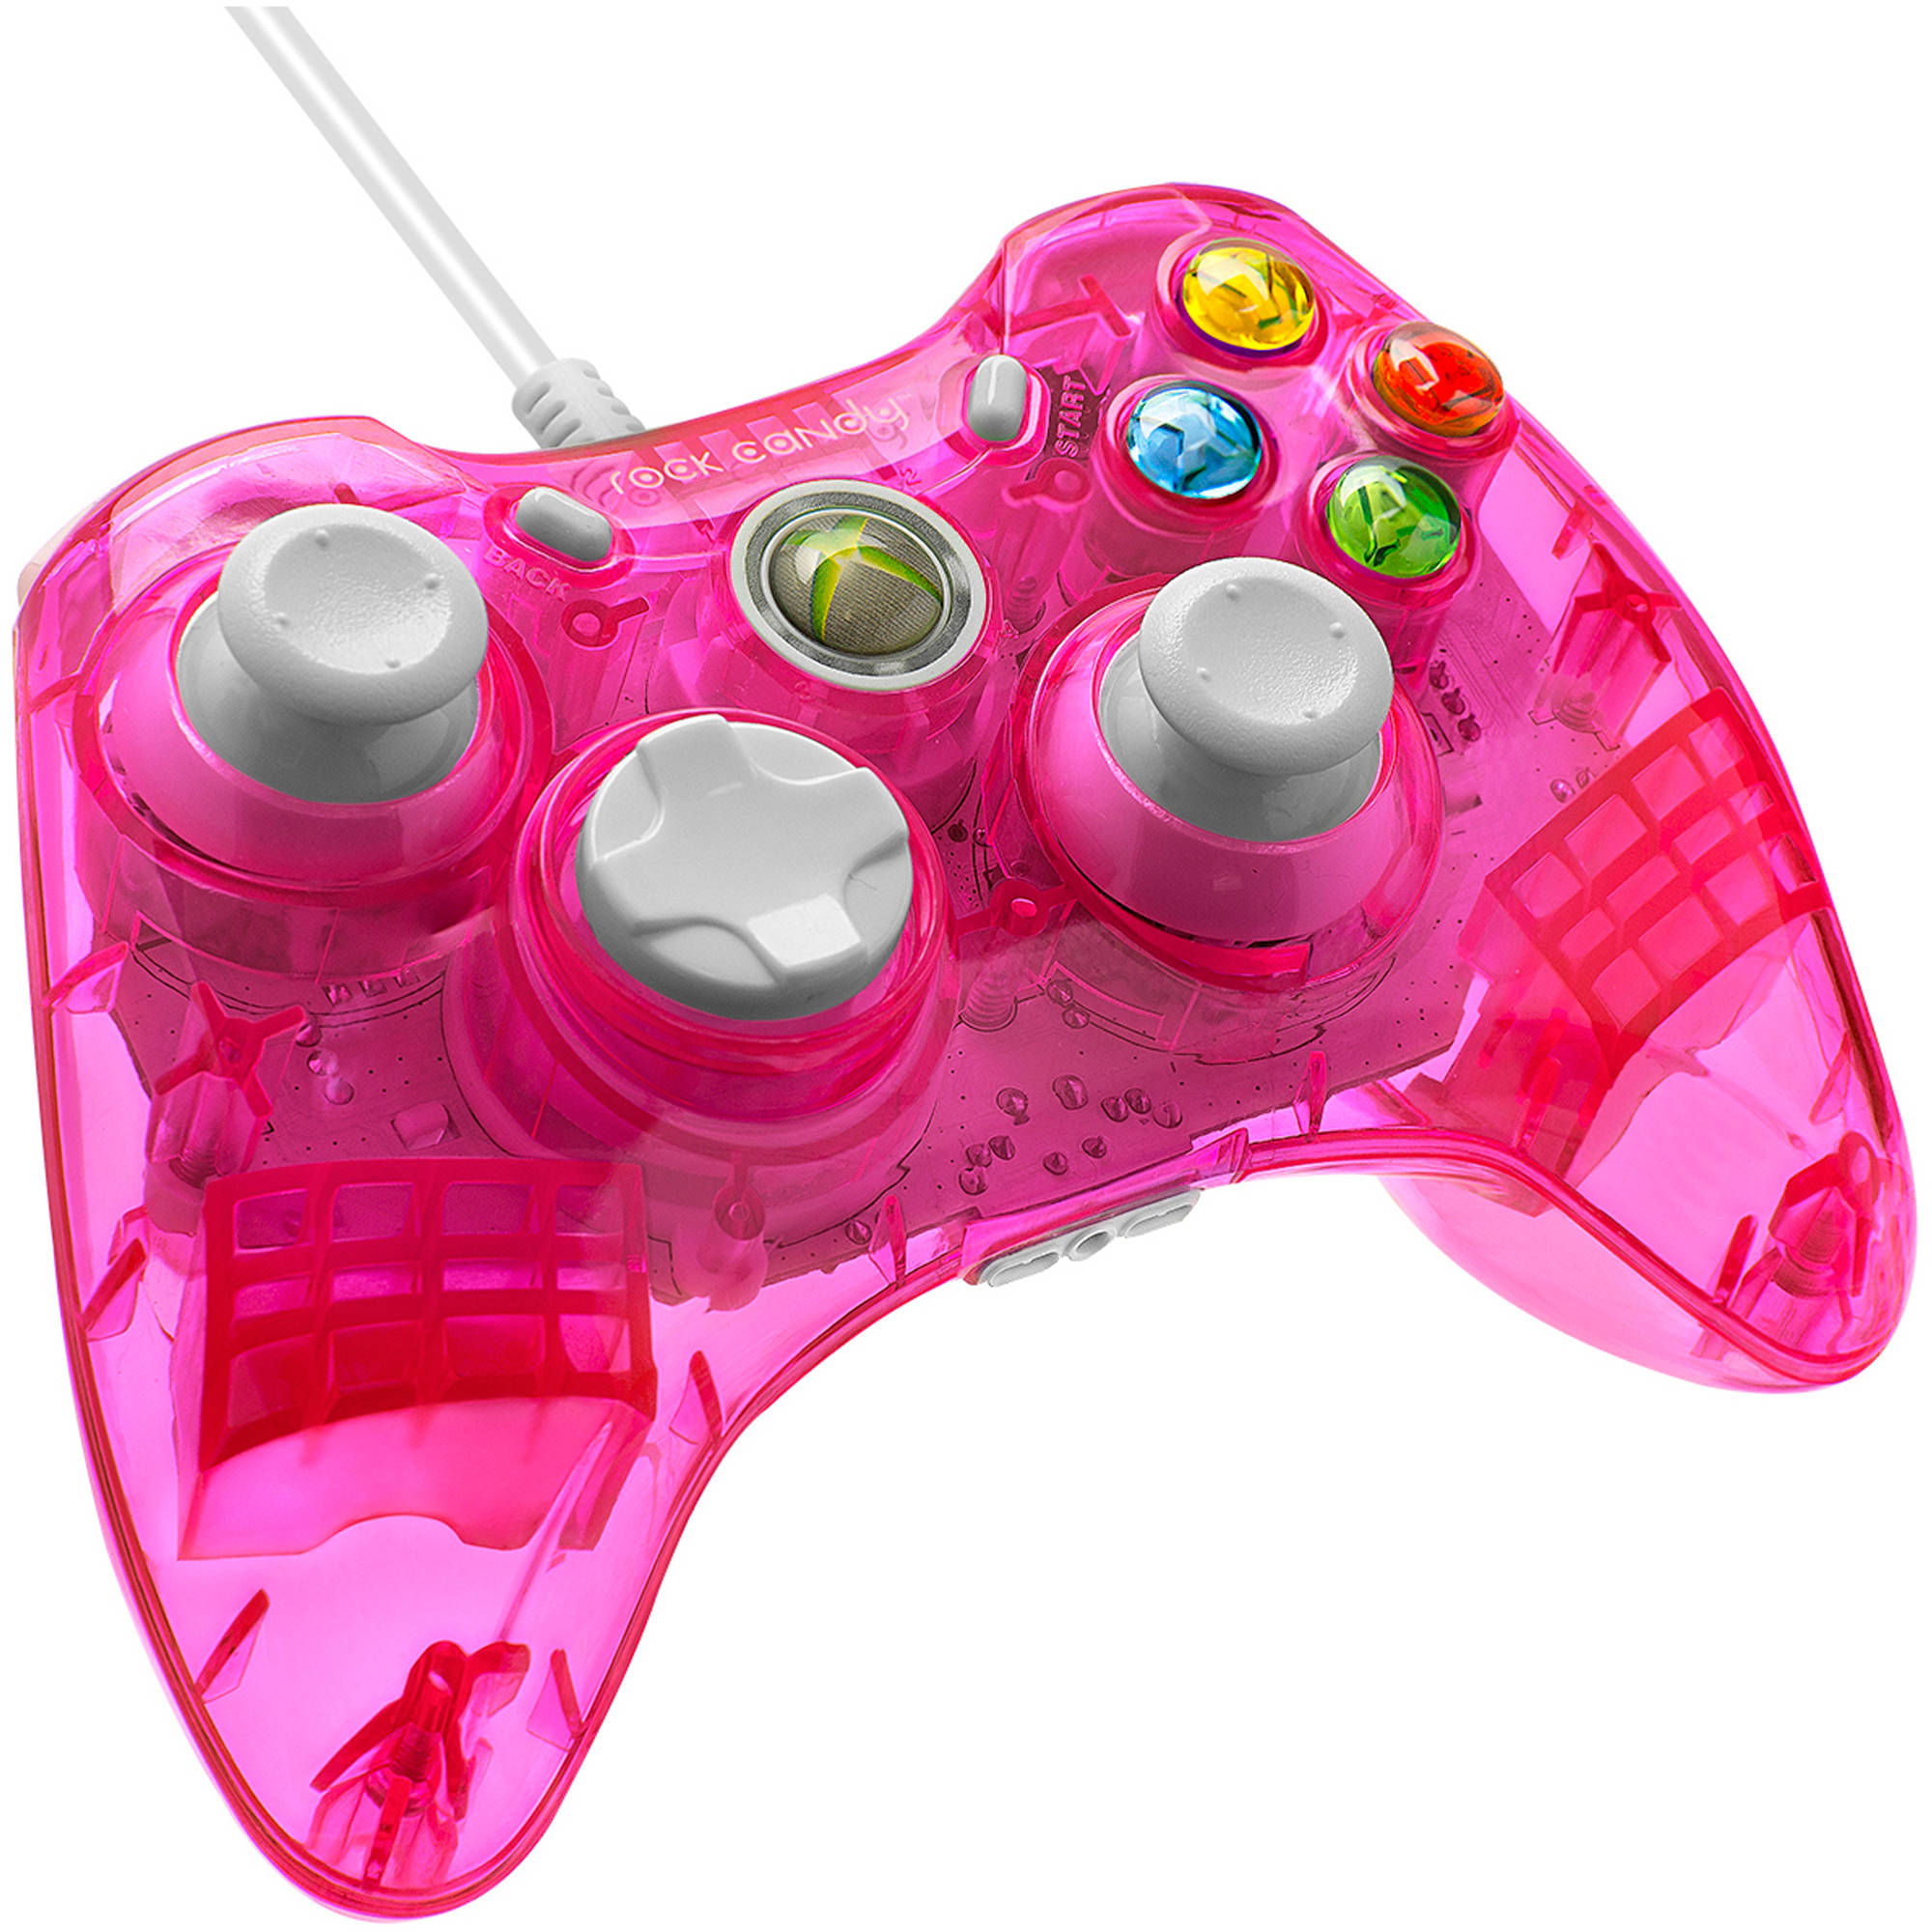 PDP Rock Candy Wired Controller for Xbox 360, Pink Palooza - Walmart.com